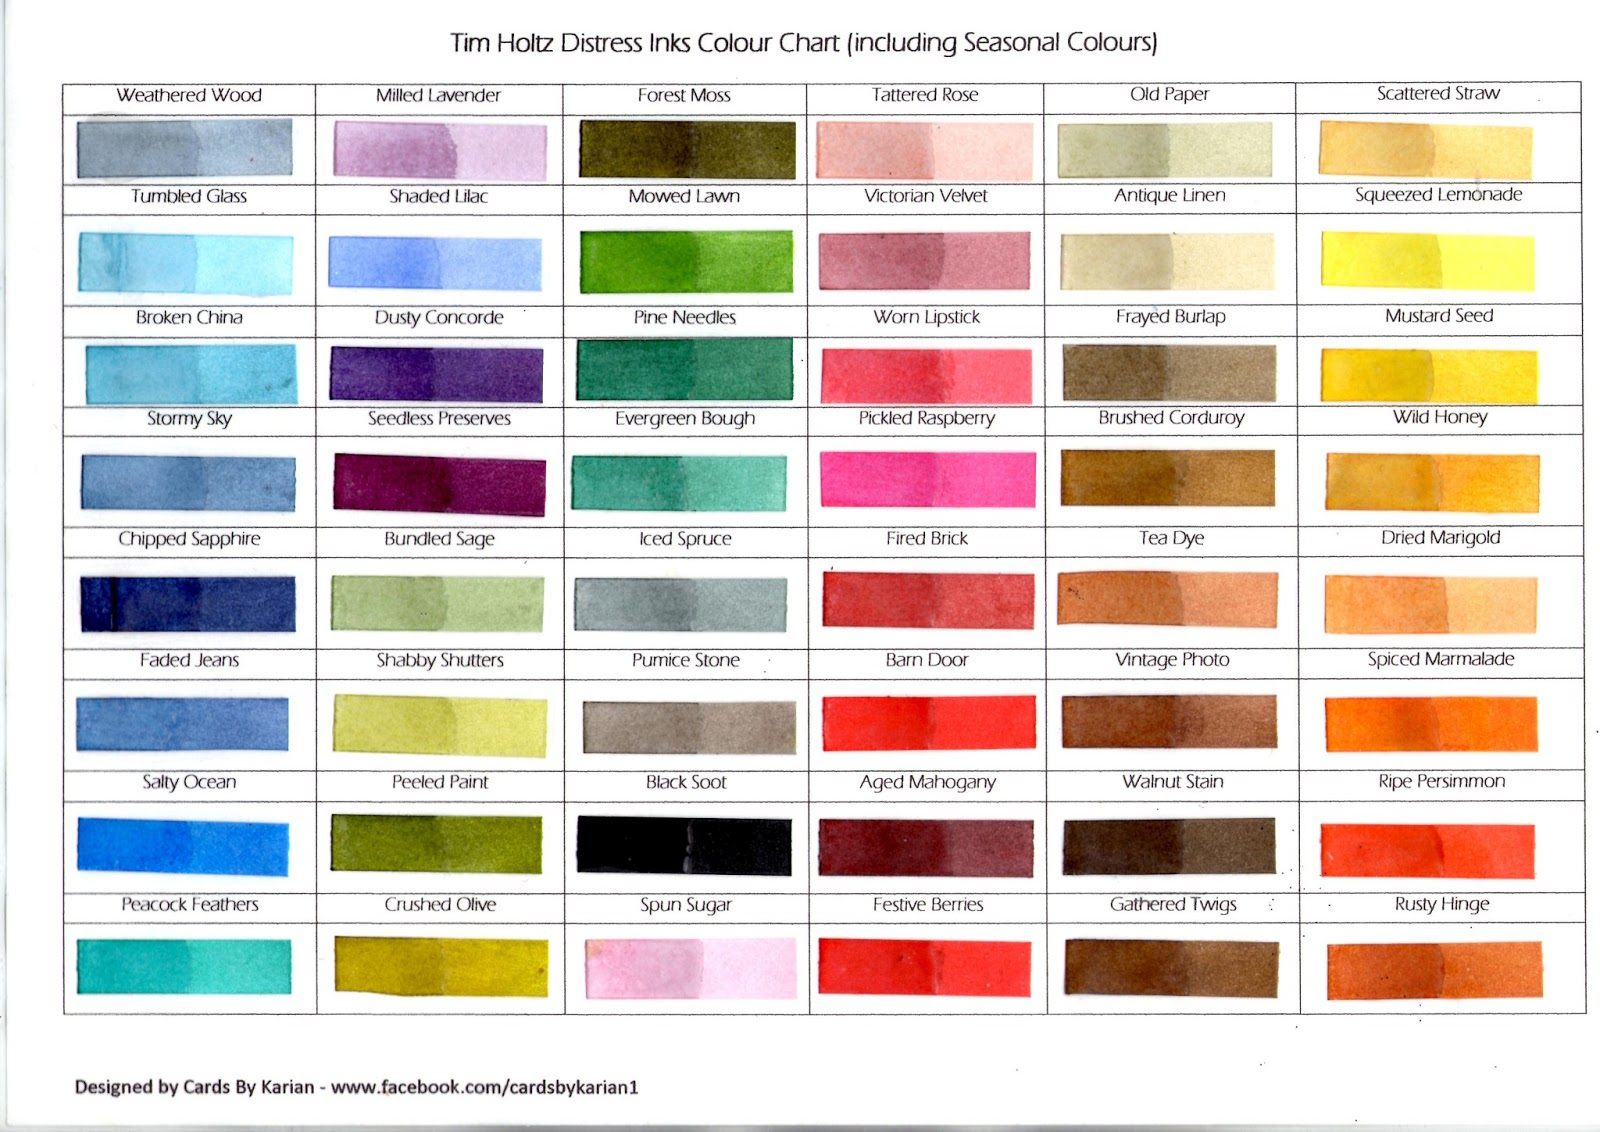 Sage color chart awesome recent posts with sage color chart simple perfect memento ink pads color chart with sage color chart geenschuldenfo Images